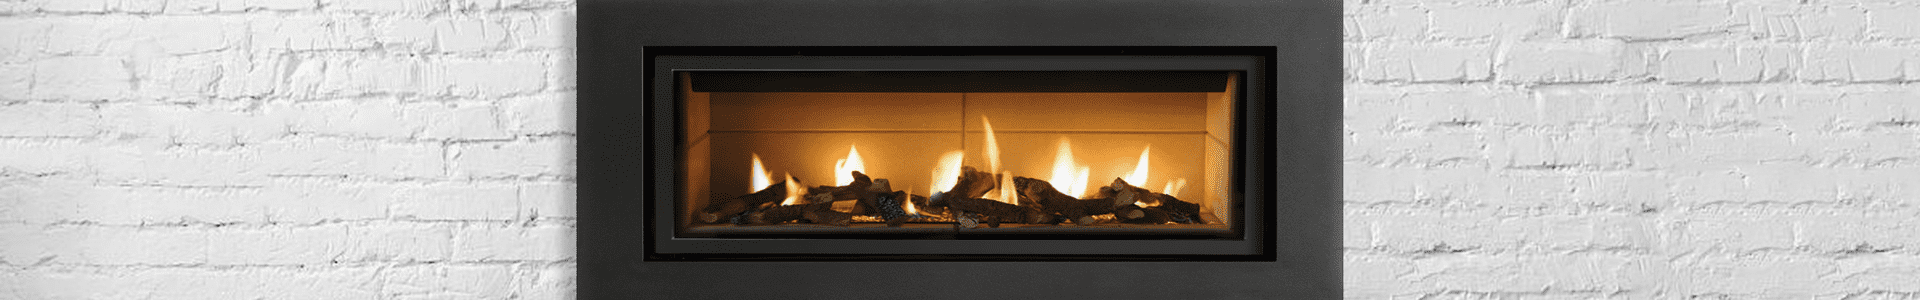 Luxury fireplaces in Chesire